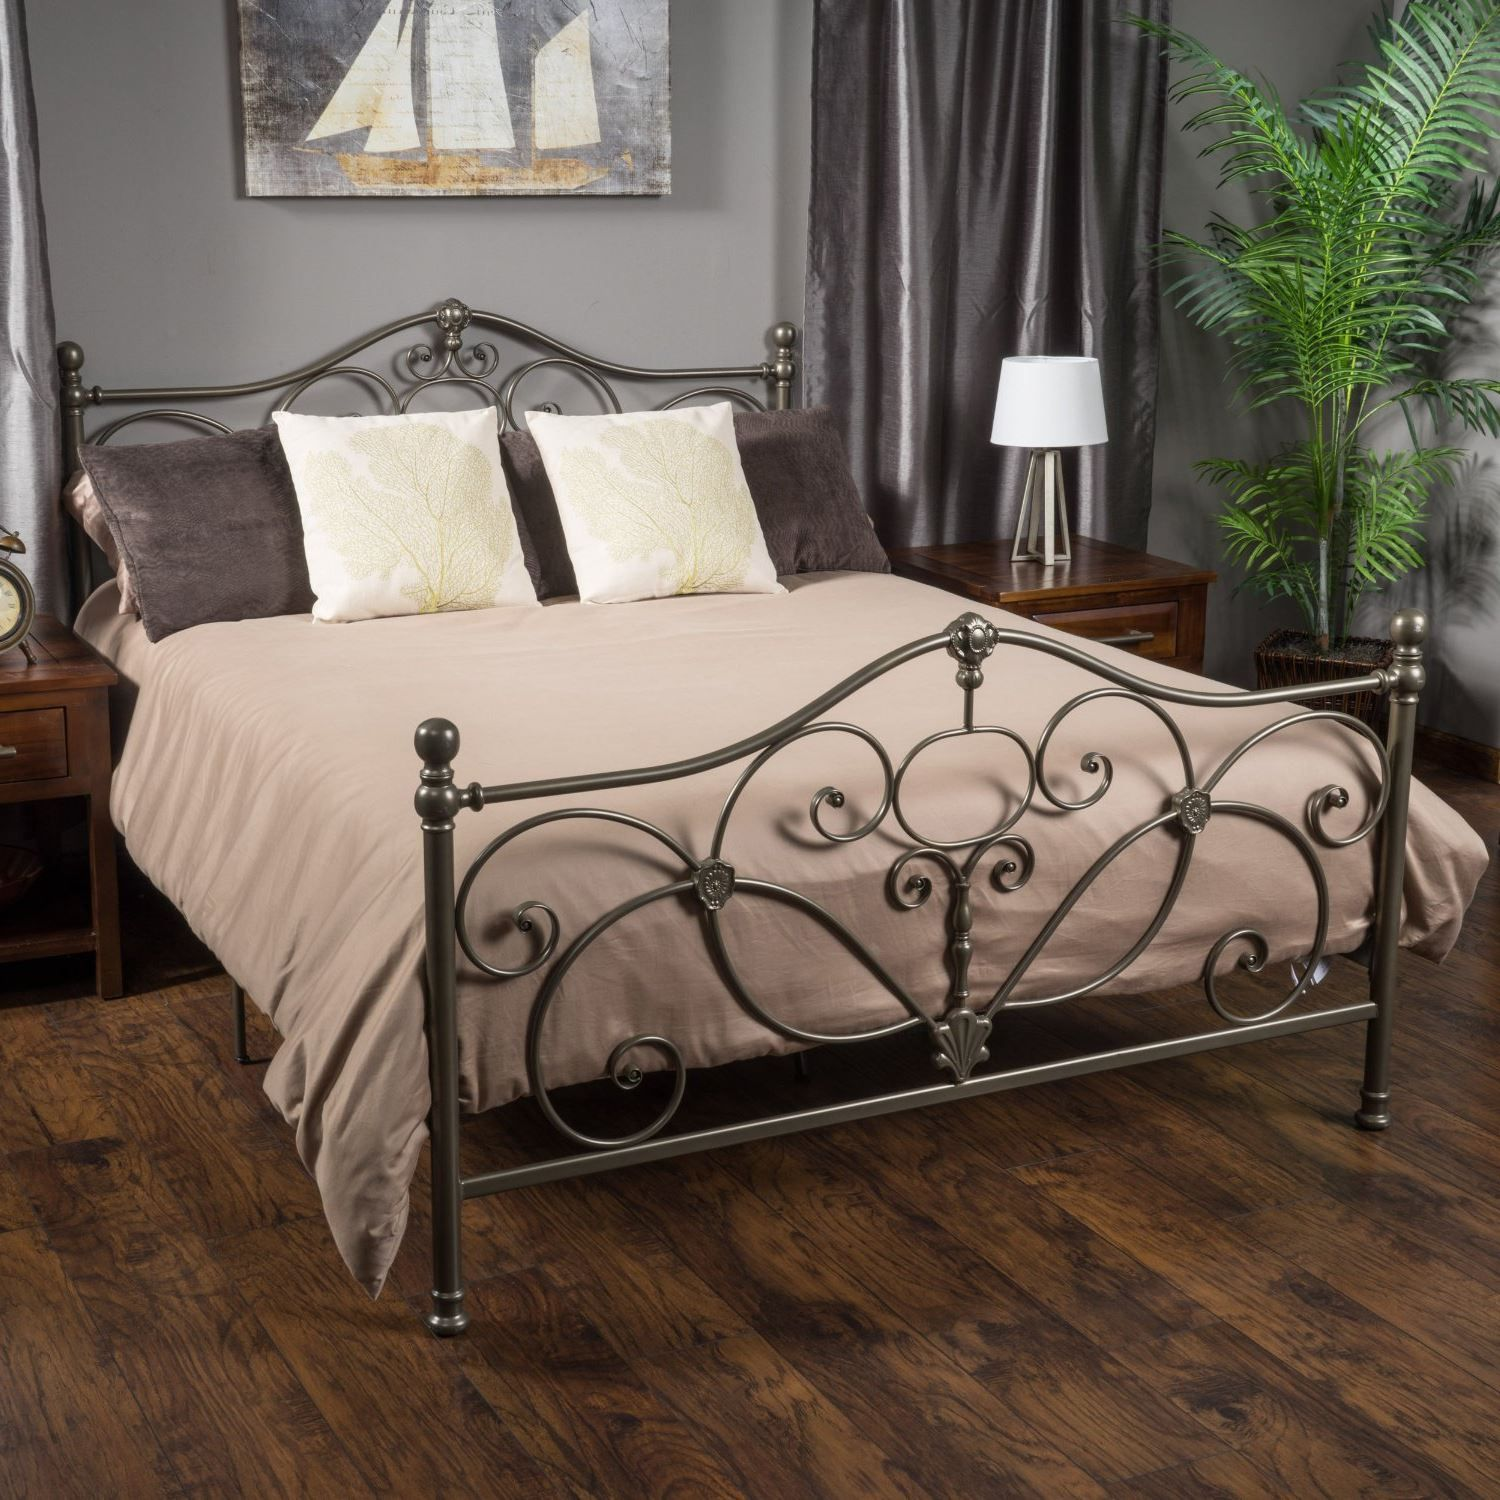 Kelford Champagne Iron Metal Bed Frame King Size King Size Metal